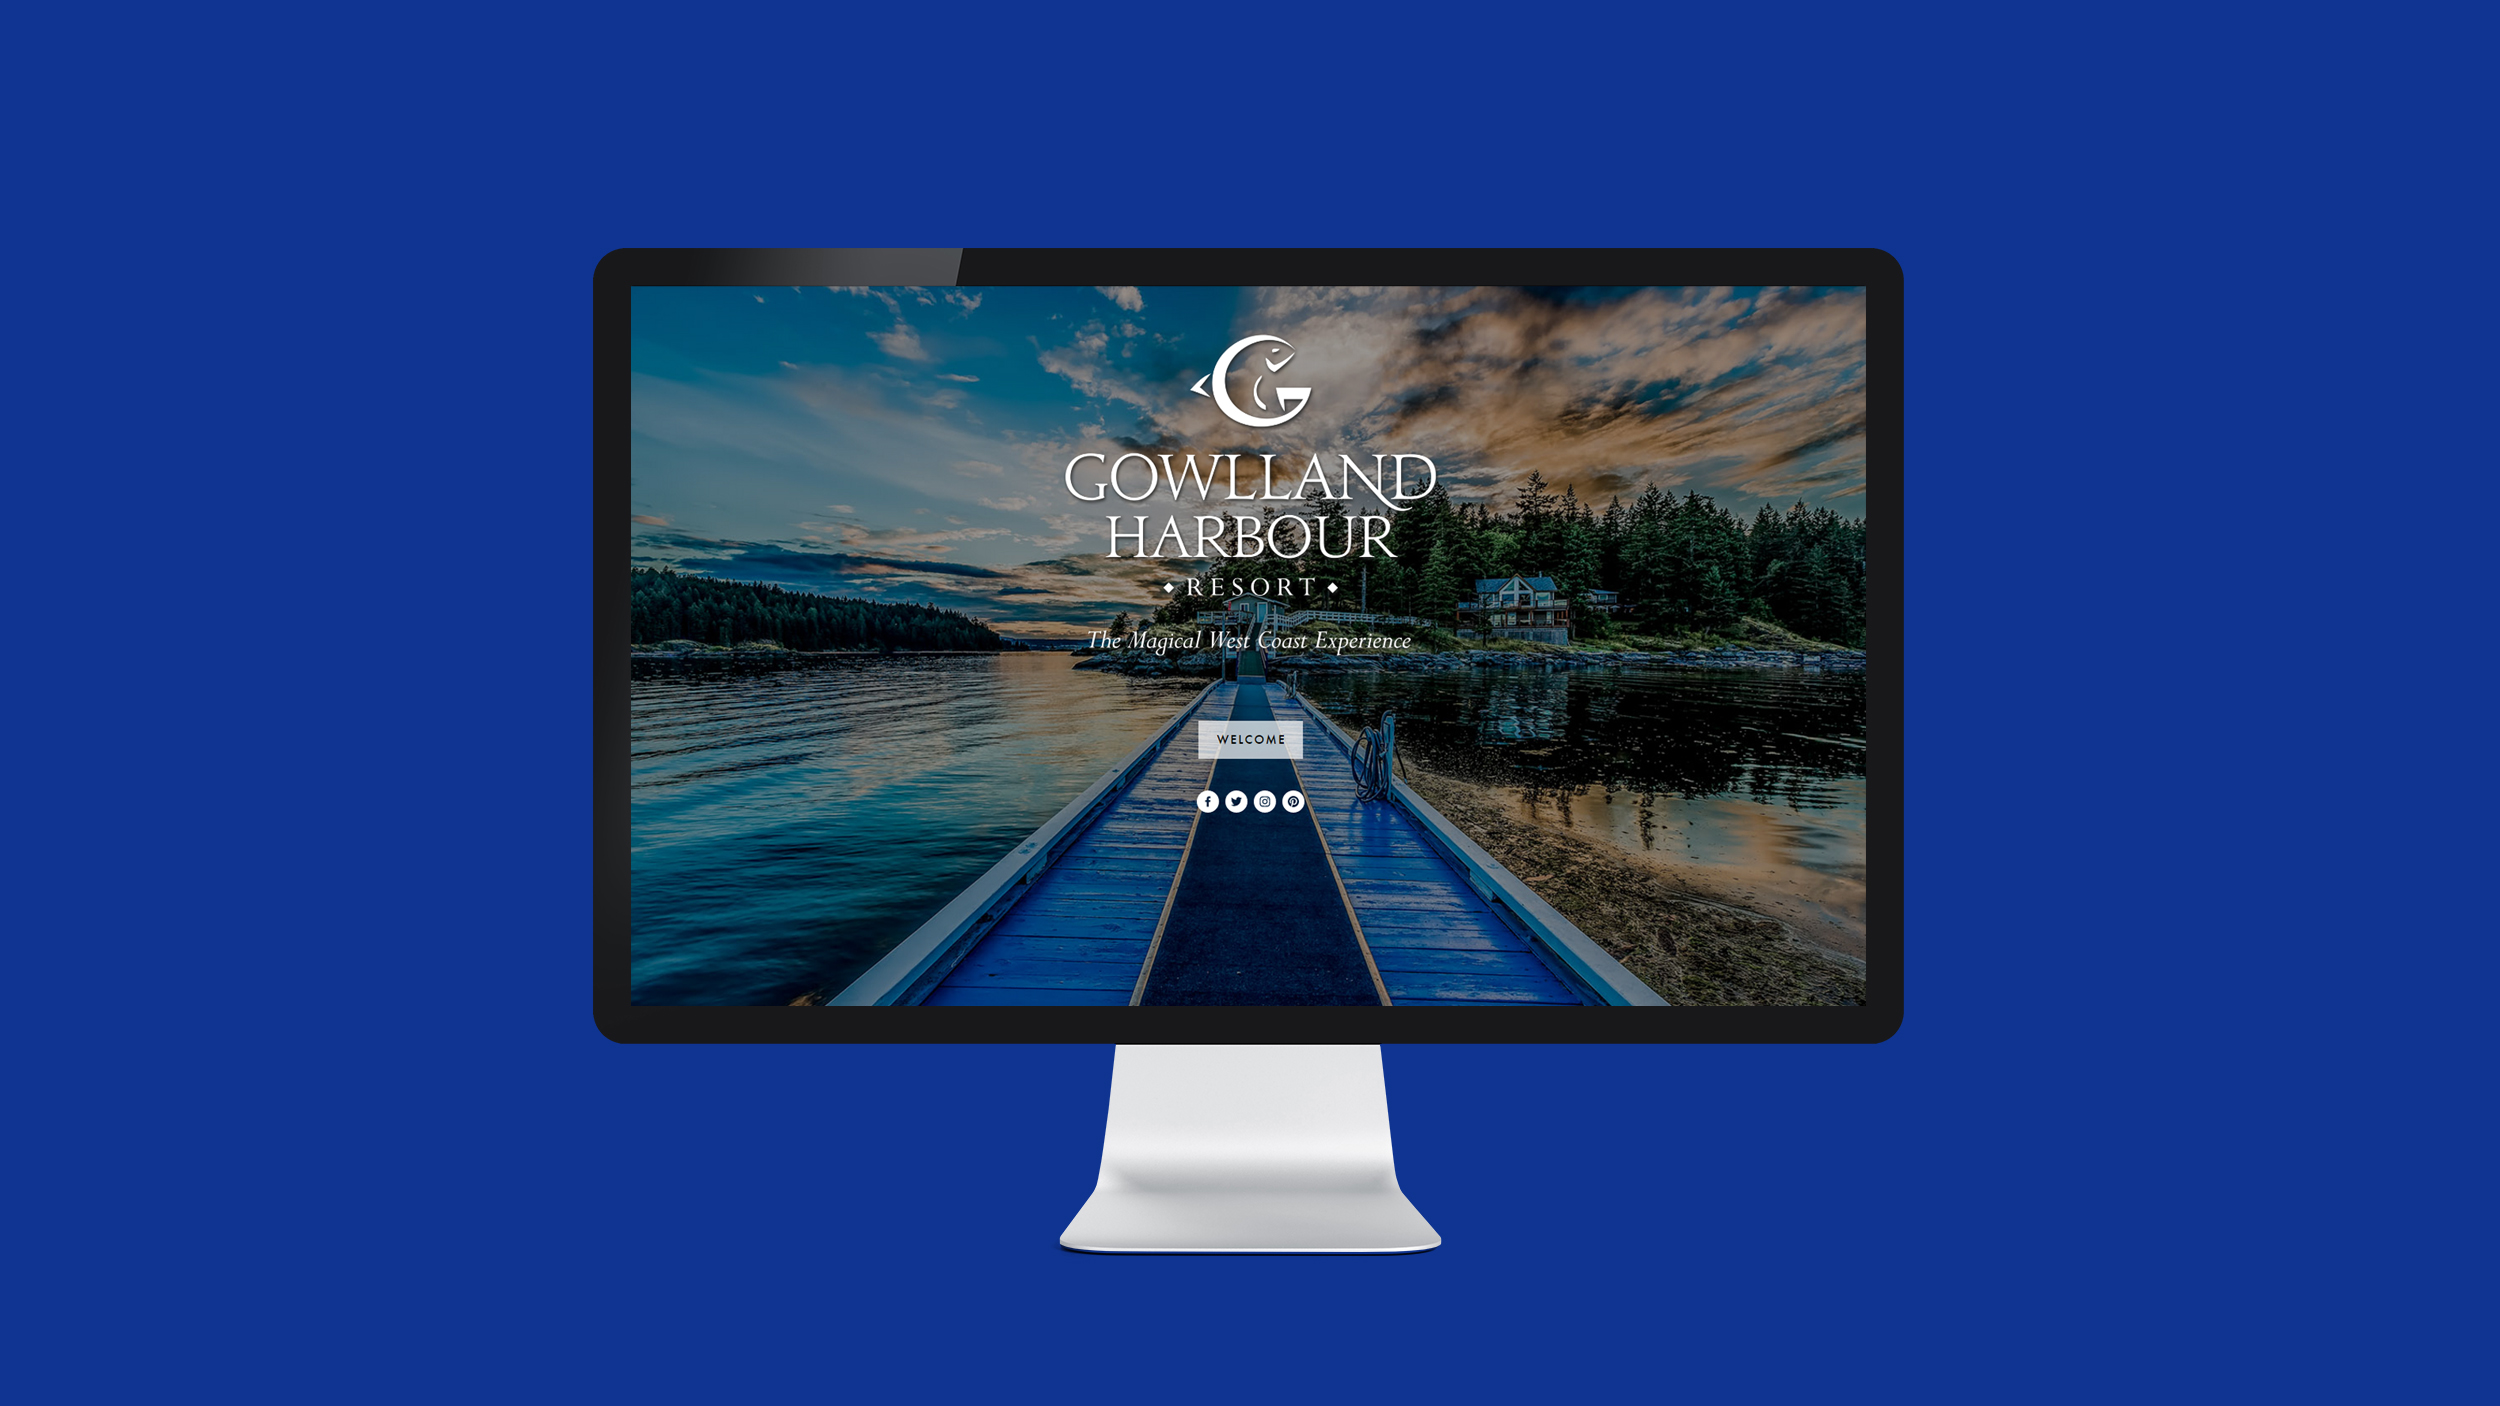 Gowlland Harbour Resort   gowllandharbour.com  - Copyright © 2012-2017 460 Communications Inc. All rights reserved.  This design is intended strictly for portfolio use only and cannot be reproduced in any way with out written consent from 460 Communications Inc.